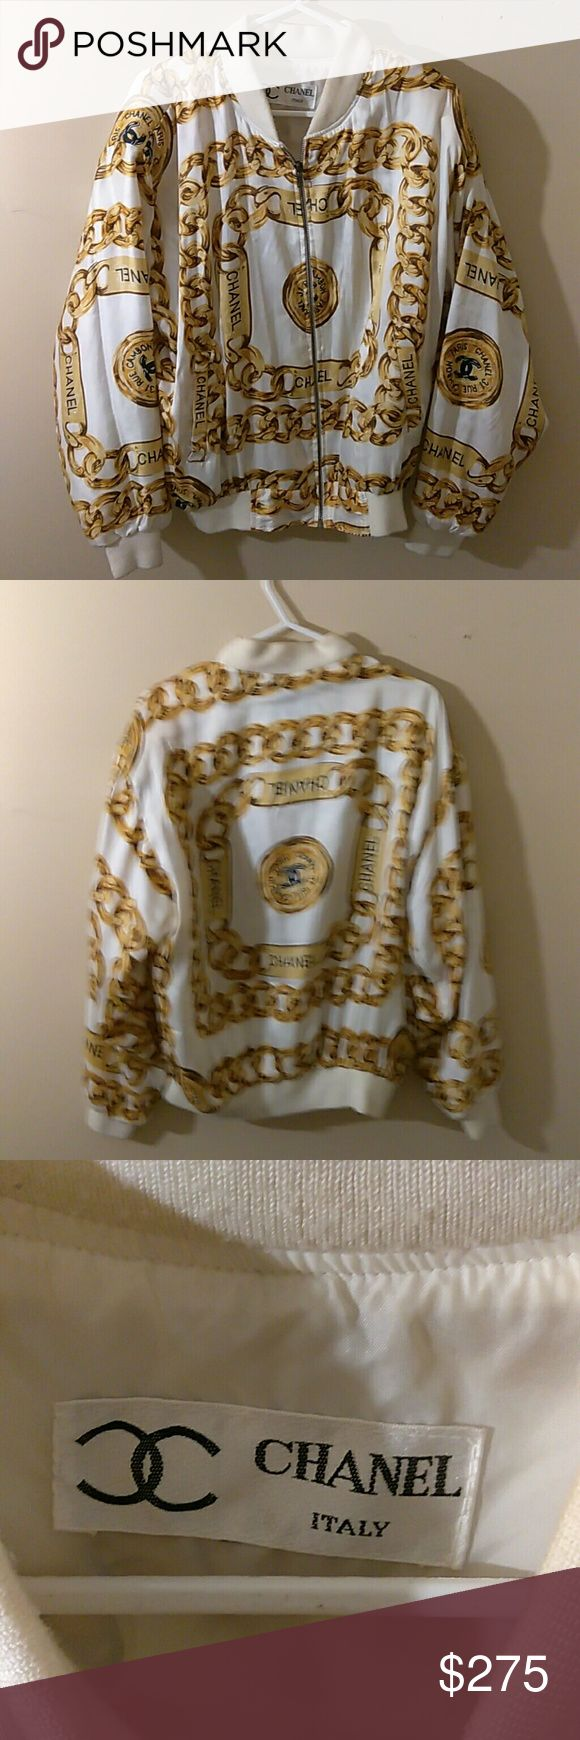 FLASH SALE  VINTAGE CHANEL GOLD CHAIN JACKET. Hard to find Chanel silk bomber jacket from the 90's with gold chain design  Unknown size but feels like a medium ?  Still has the shoulder pads.  Has a few very hard to see discolorations (see last photo) I haven't tried cleaning them out in fear of damaging the jacket ! It is in amazing shape for being almost 30 years old. Make an offer like share and follow me for more items like this ! CHANEL Jackets & Coats Bomber & Varsity